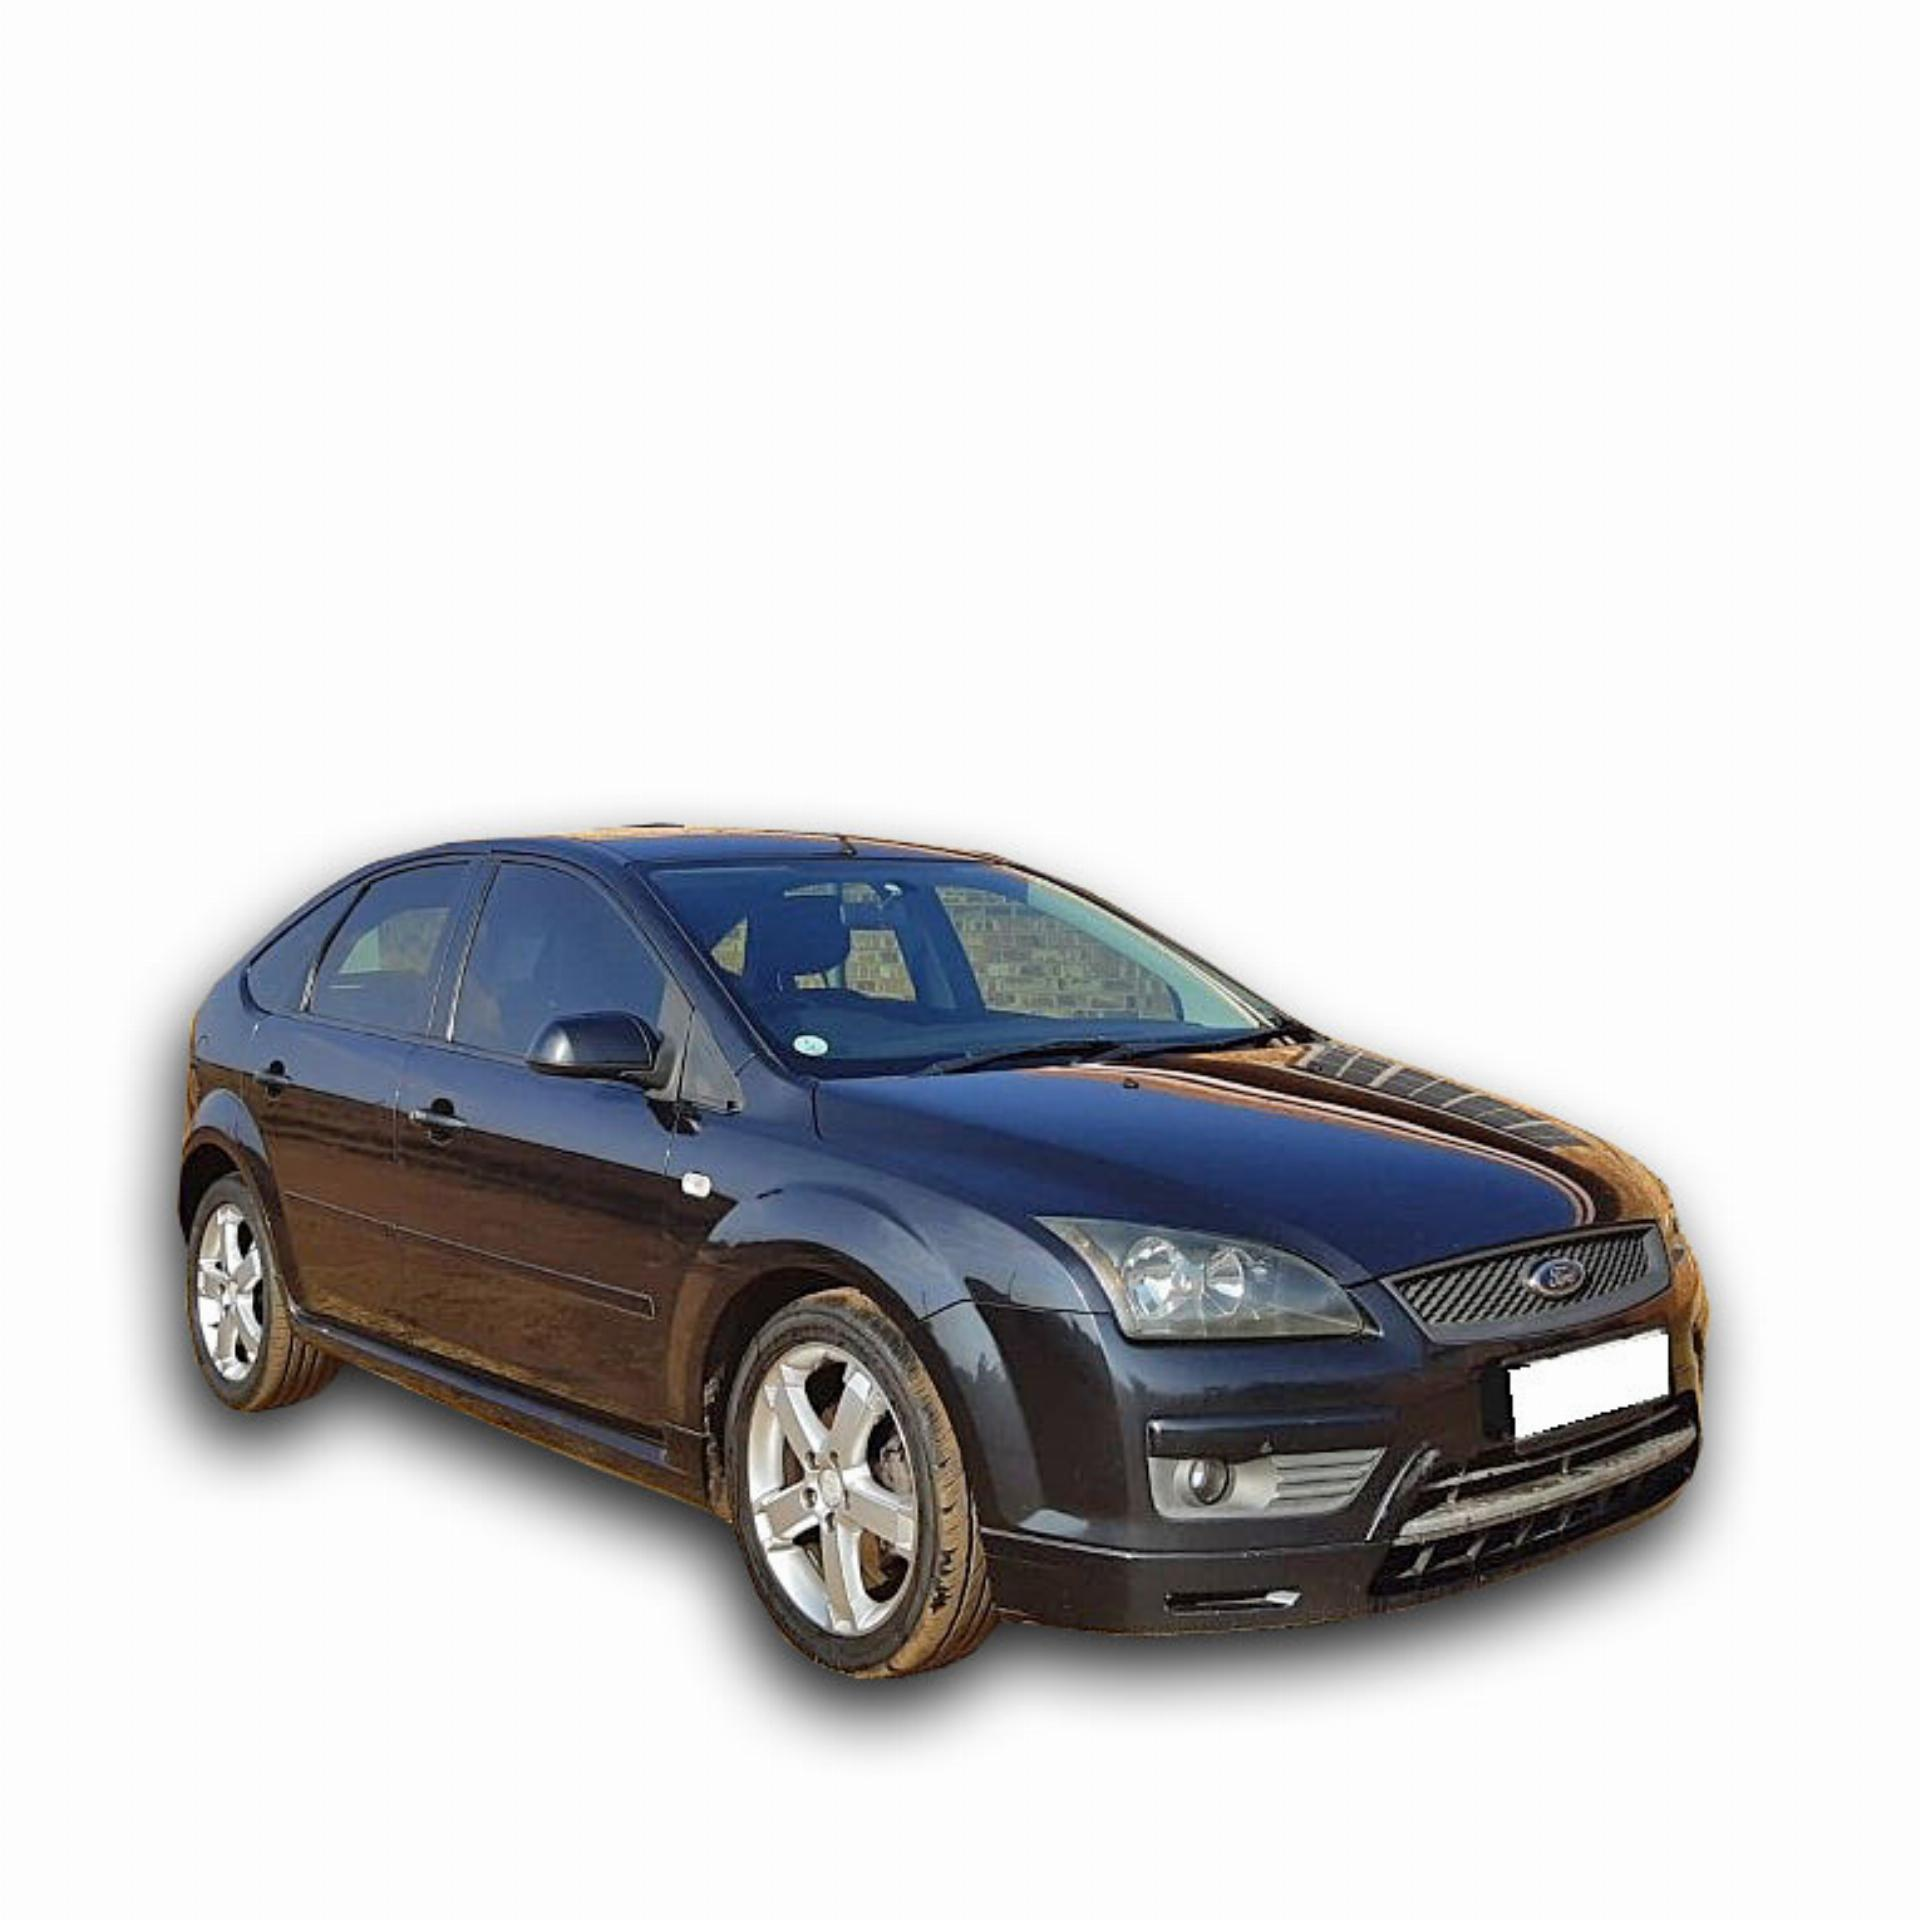 Ford Focus 1.6 SI 5 DR Hatchback